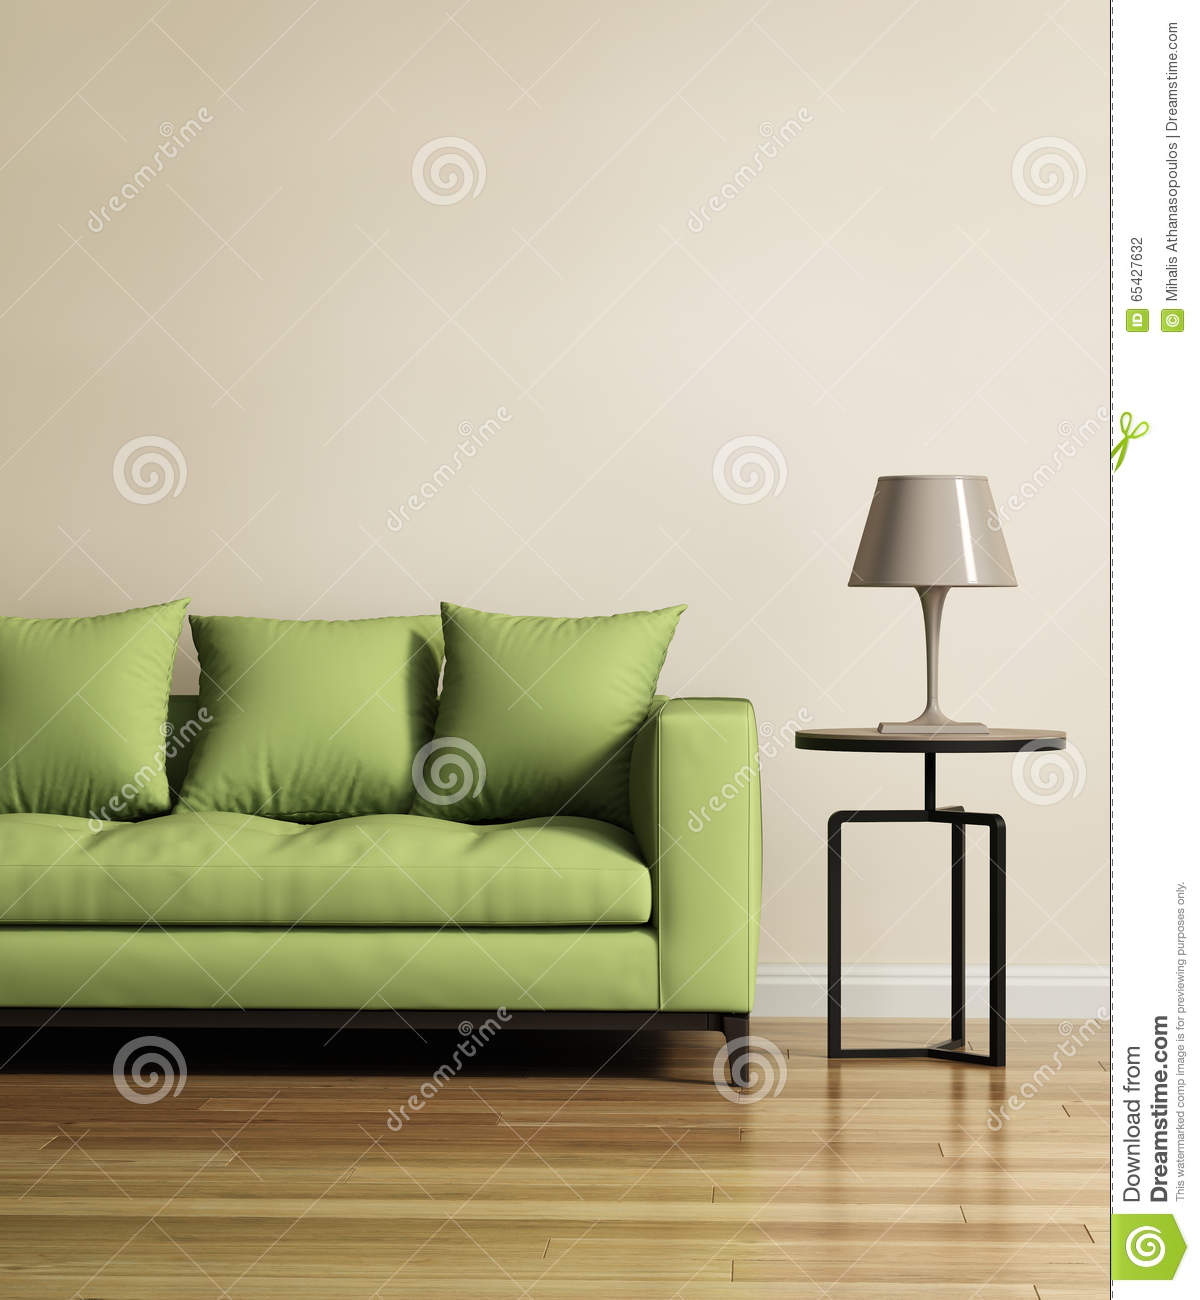 39 Living Room Ideas With Light Brown Sofas Green Blue: Living Room With A Light Green Sofa Stock Photo